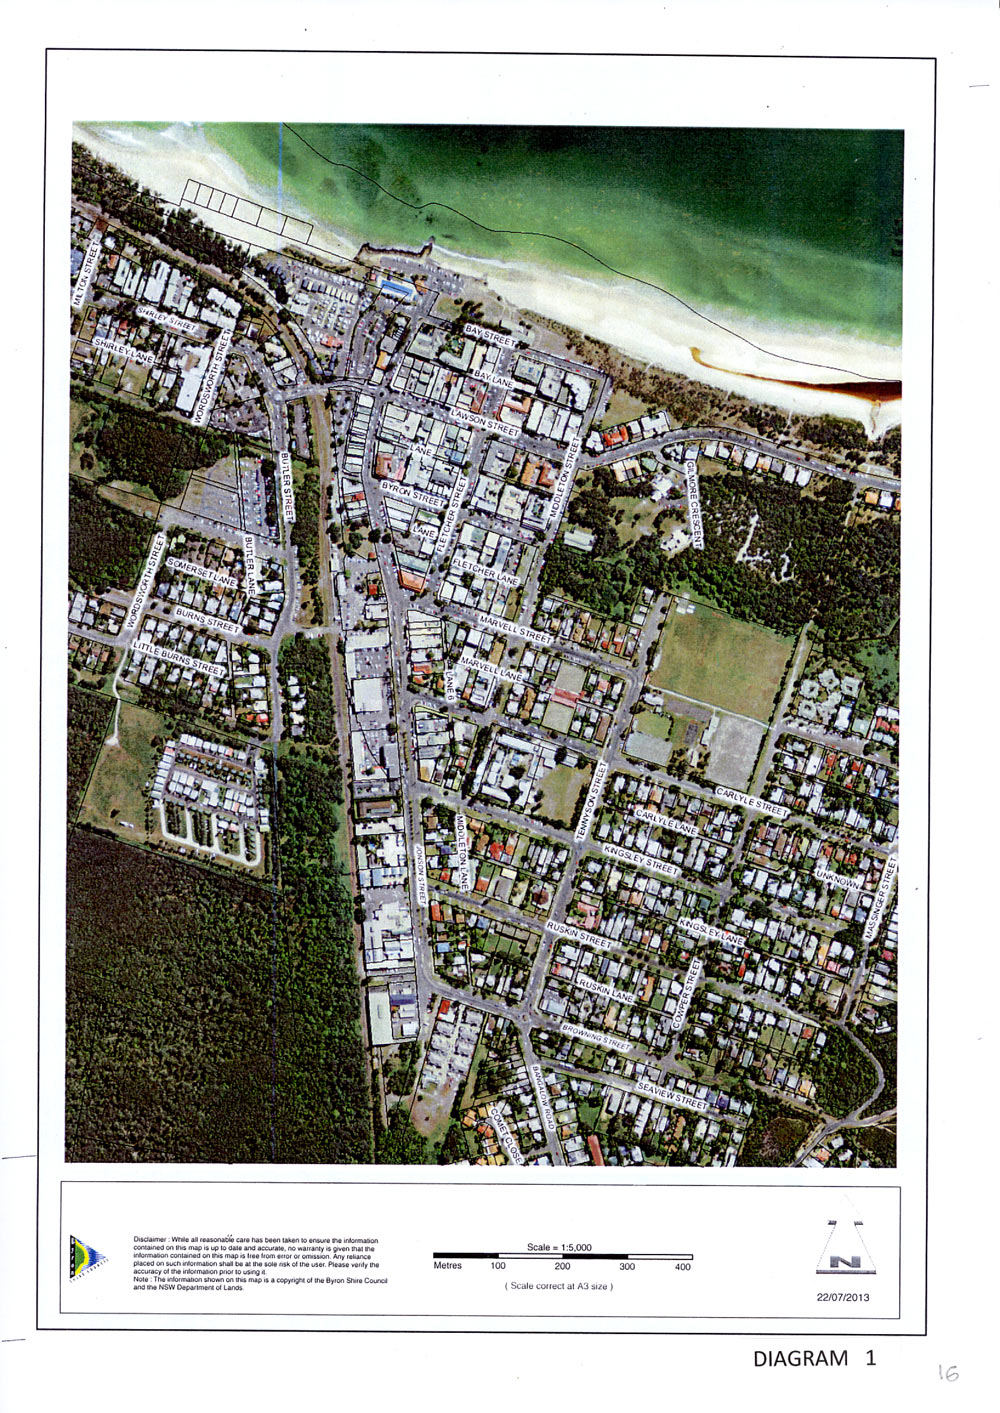 BYRON BAY TOWN CENTRE MASTER PLAN aerial view